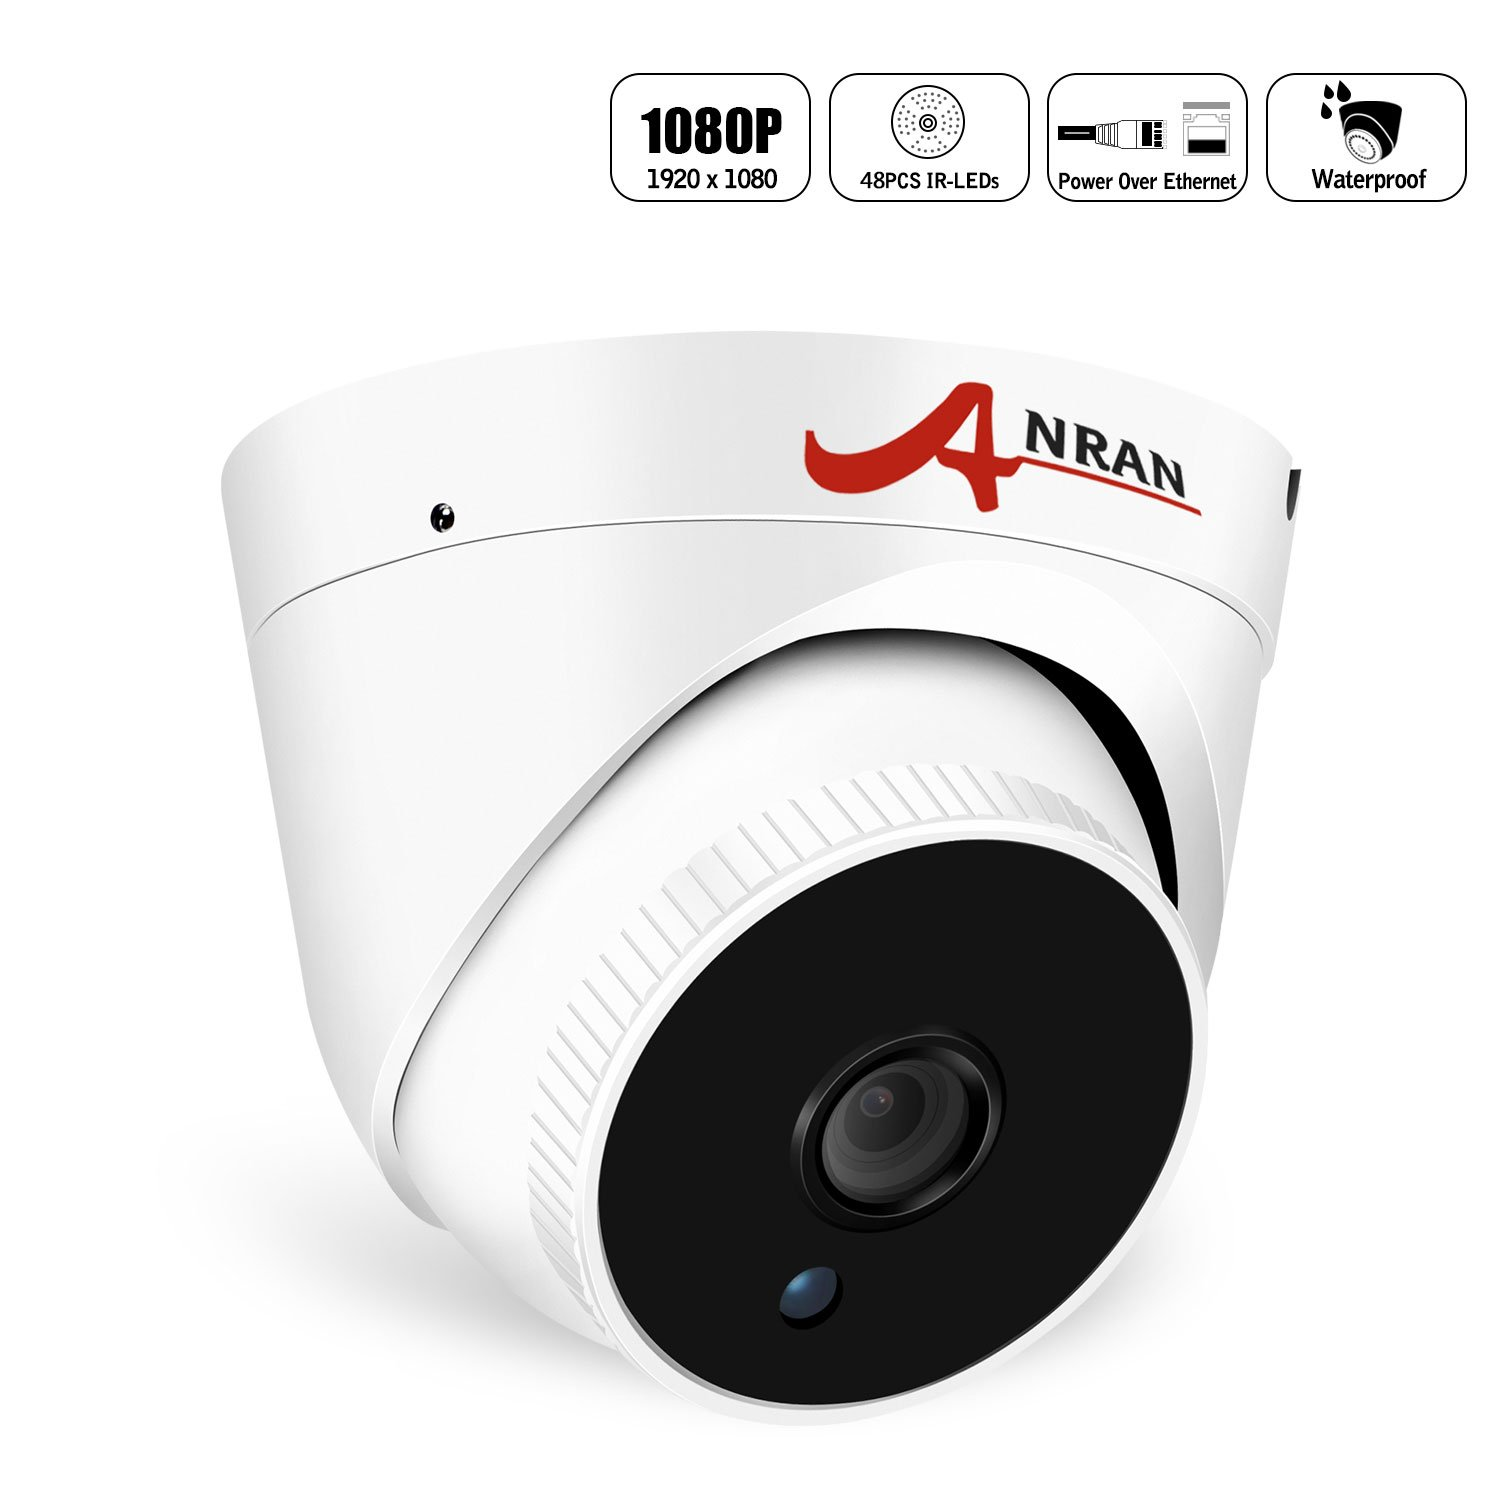 Home Video PoE Security Camera, ANRAN 2.0MP Dome Surveillance IP Network Camera IP66 Weatherproof for Outdoor Indoor, Power over Ethernet, Day Night Vision, NOT PTZ